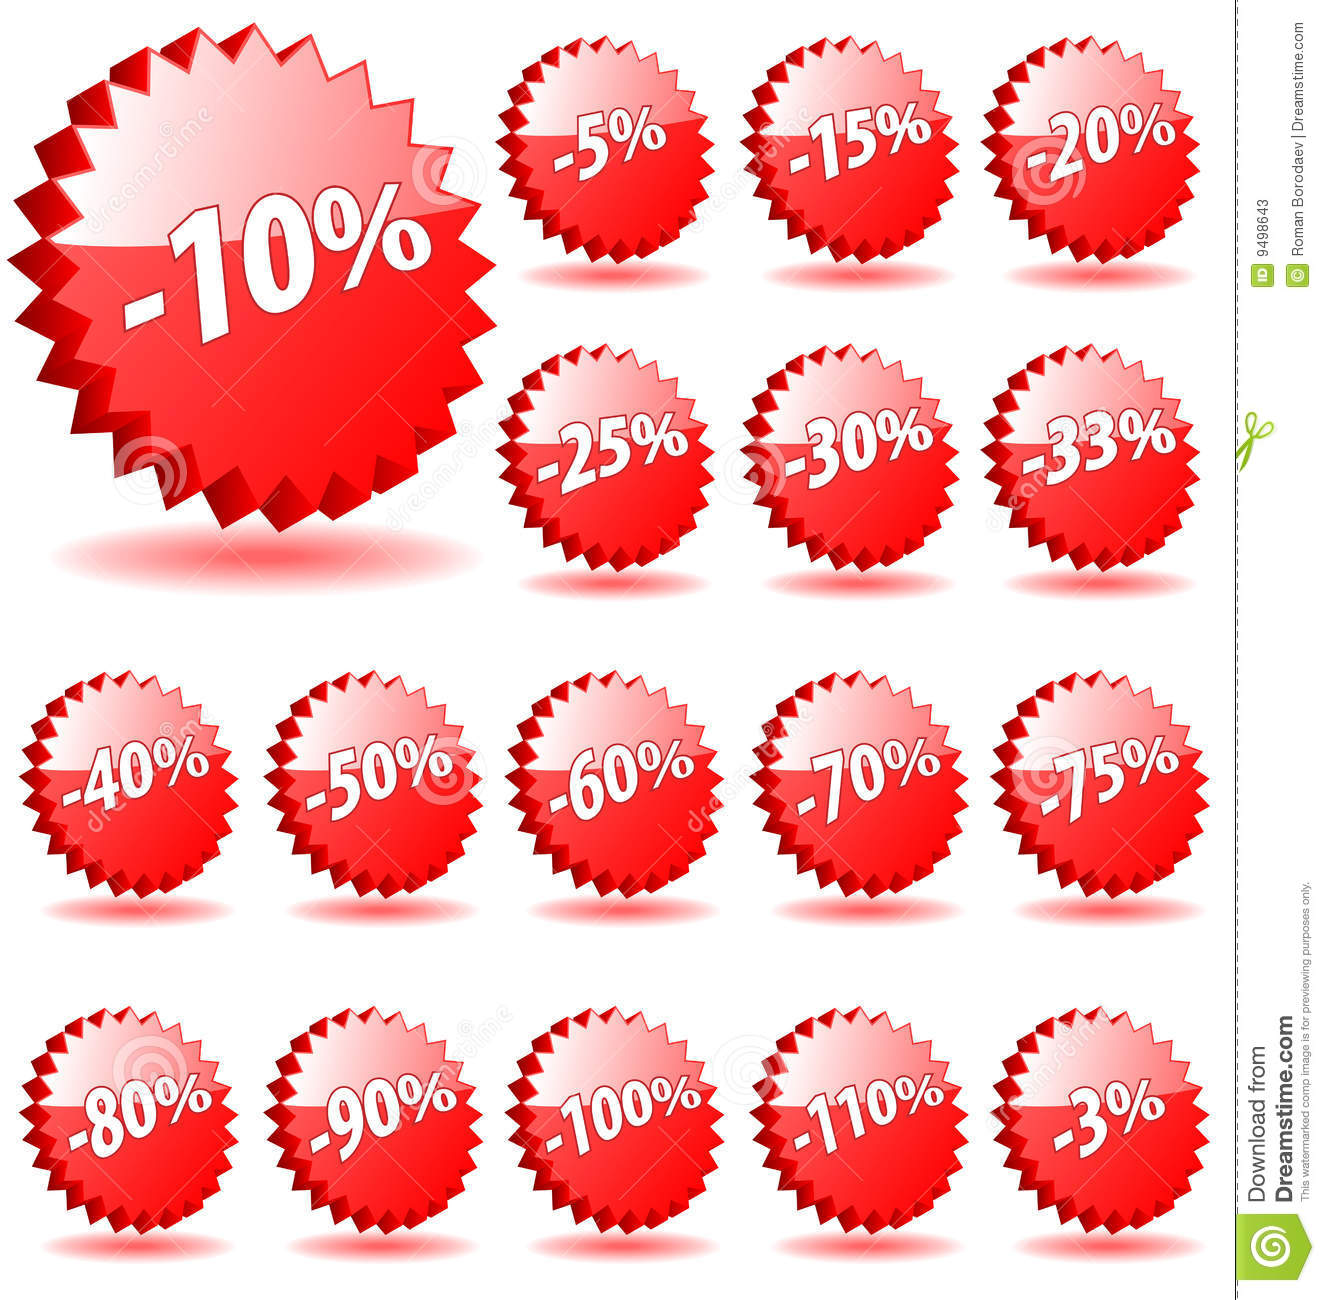 Shopping shop discount promotion vector badges badge special offer percent percents tag sticker icon label star banner coupon 5